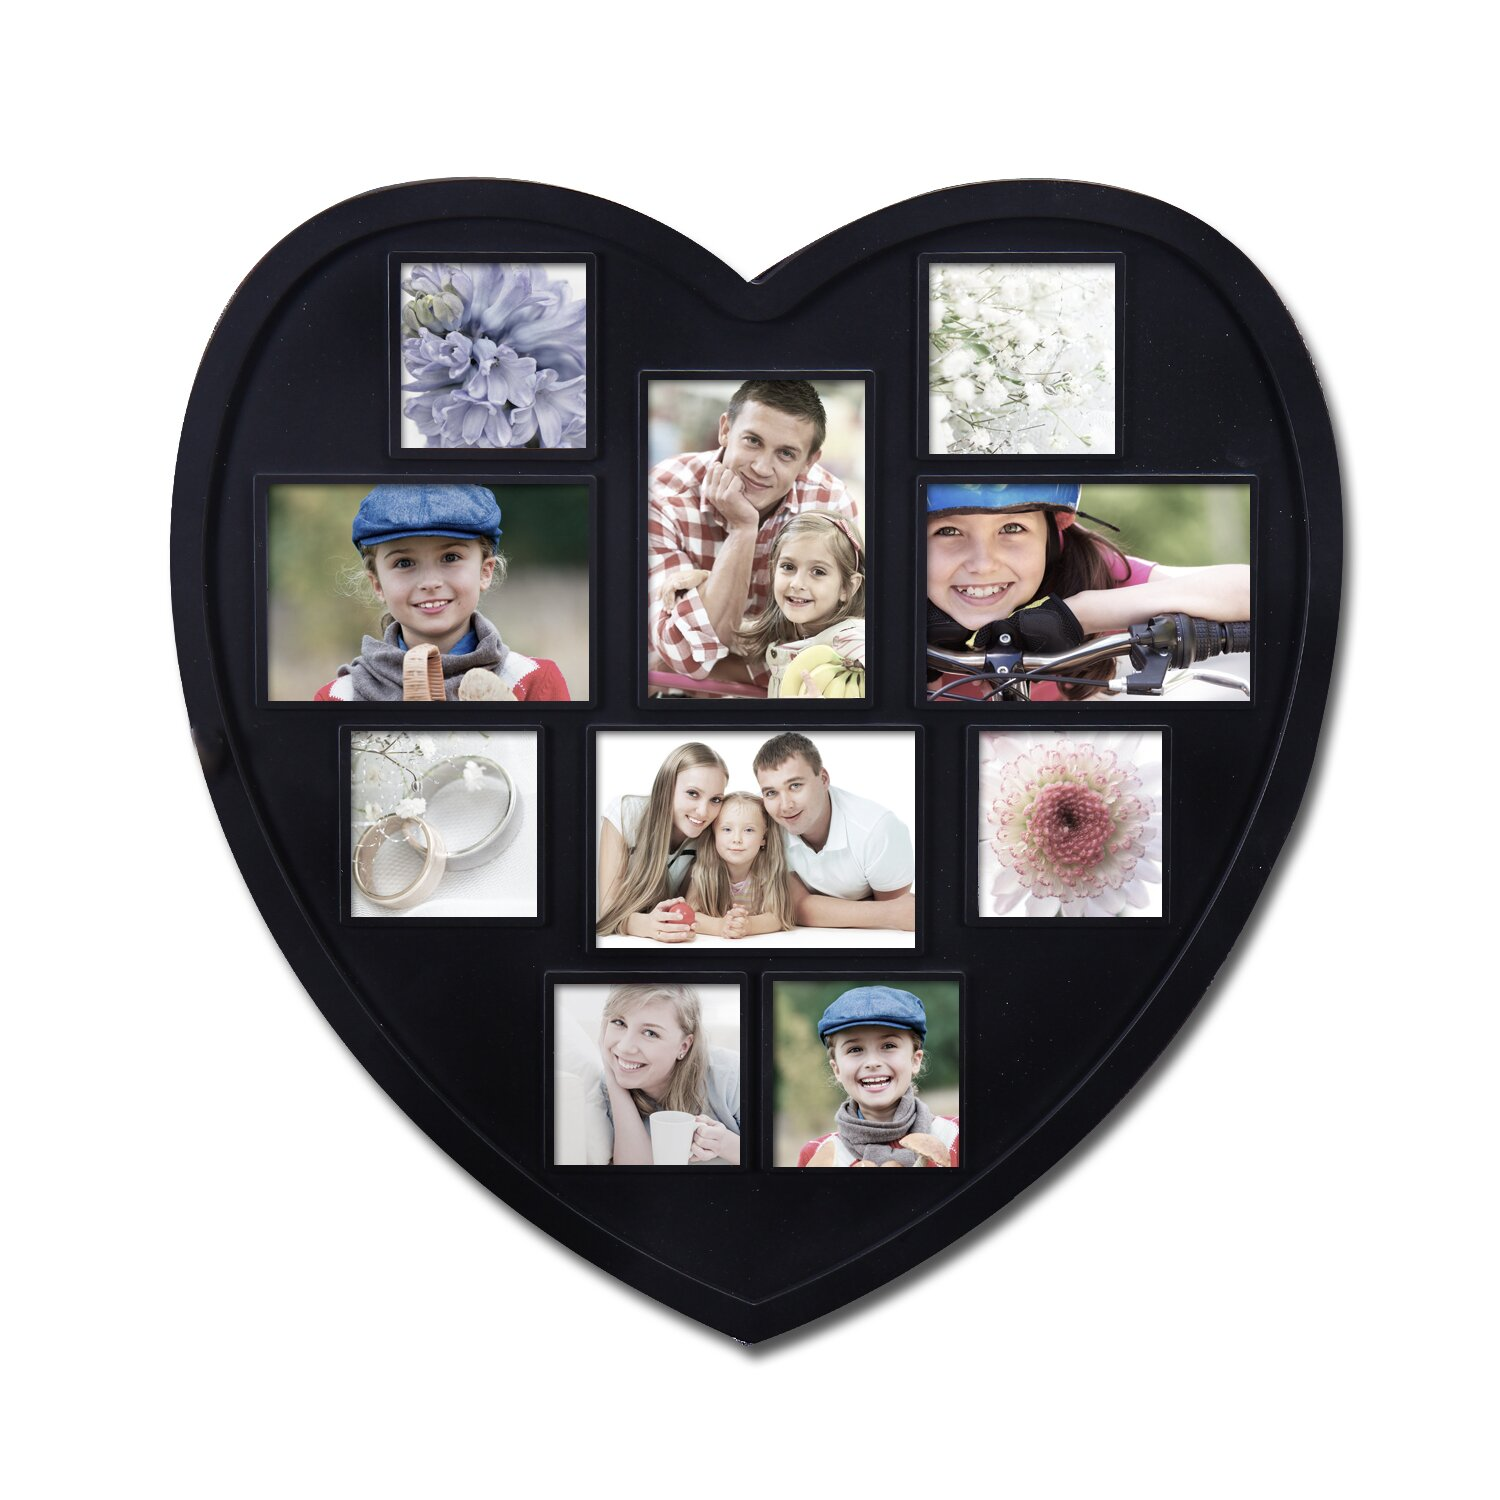 adeco trading 10 opening decorative heart shaped wall hanging picture frame